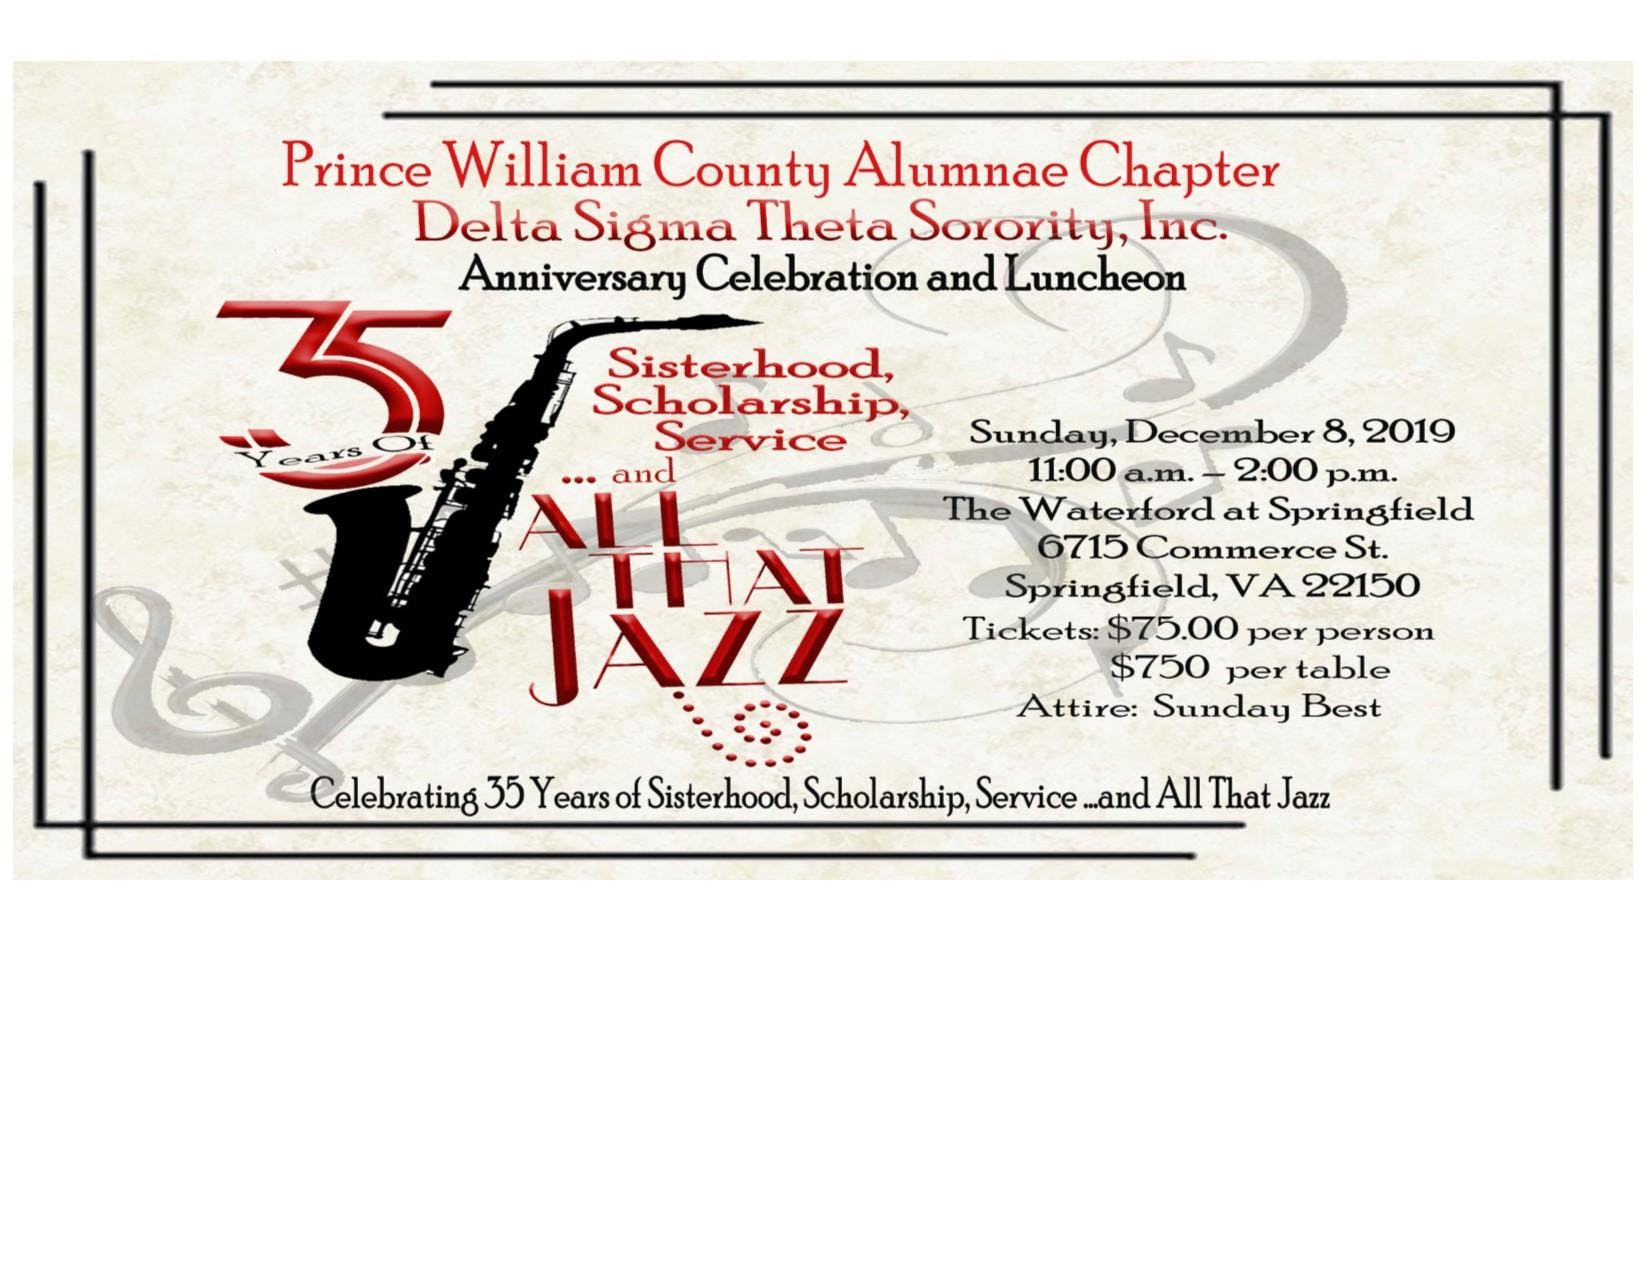 35th Anniversary of Prince William County Alumnae Chapter of Delta Sigma Theta Sorority Inc. Anniversary Luncheon